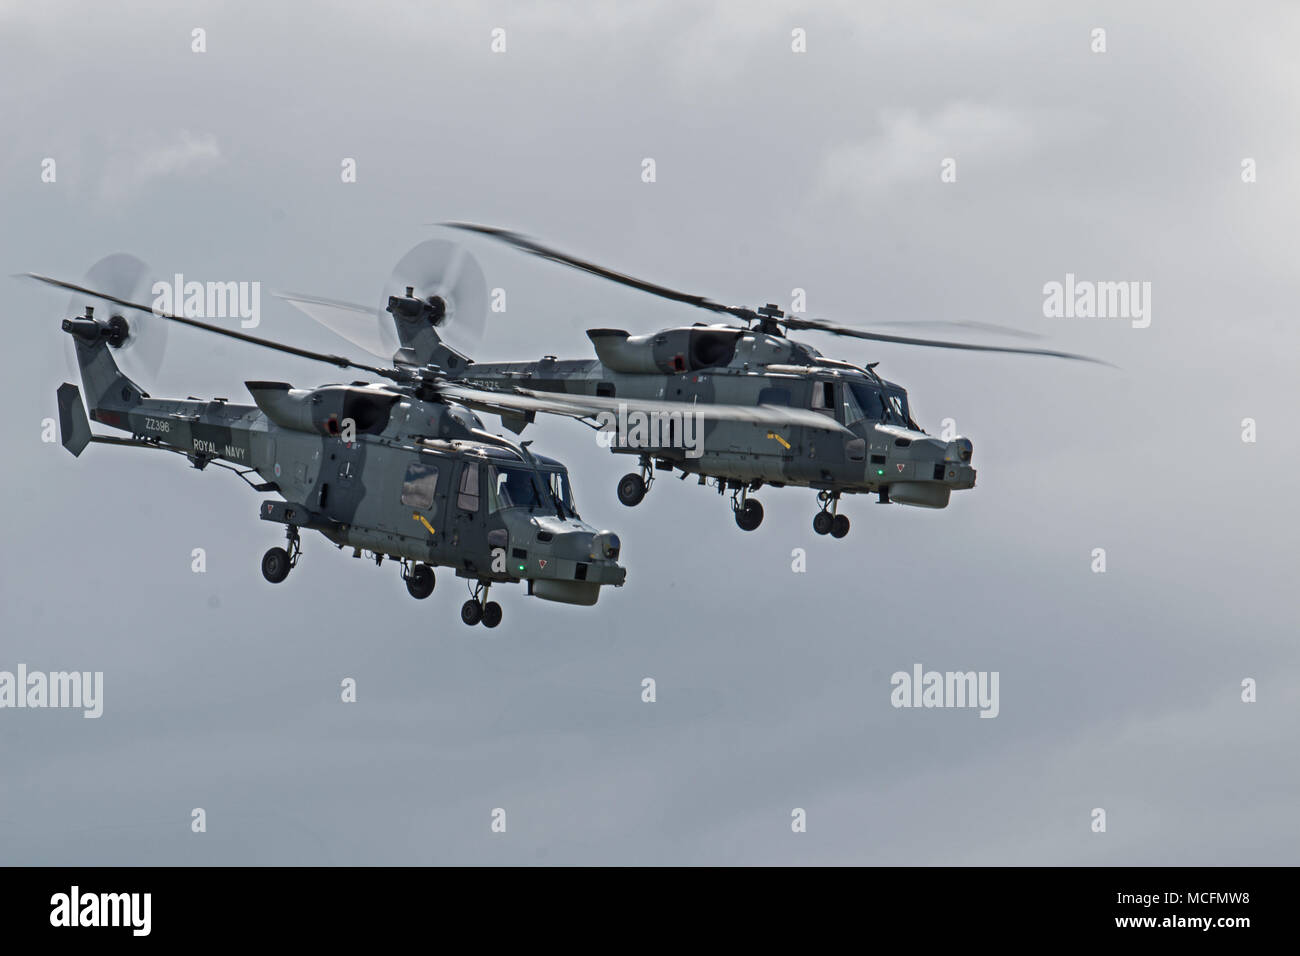 A pair of AgustaWestland Wildcat HMA Mk 2s from 825 NAS are currenlty being flown by the Royal Navys Black Cats Aerobatic Display Team Stock Photo